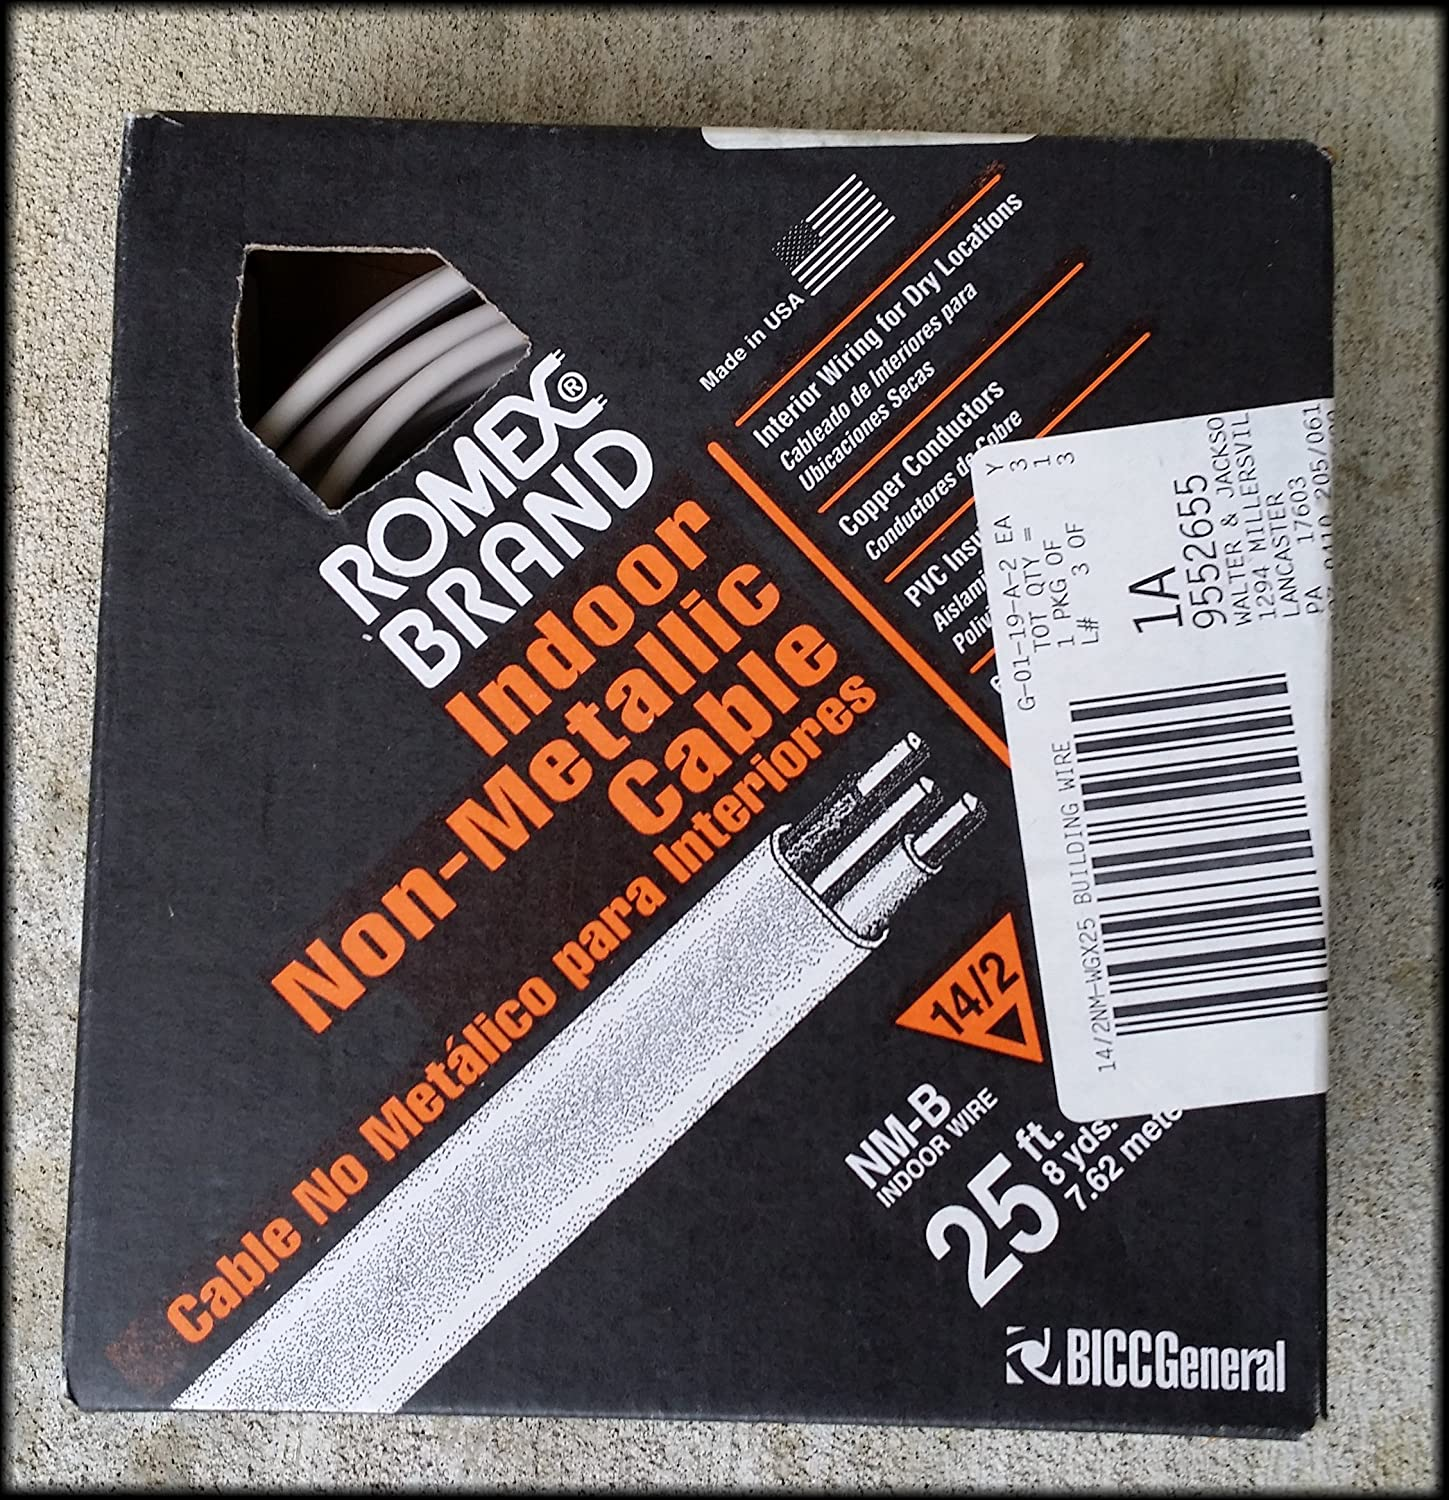 Romex Brand 25 Feet Indoor Non-Metallic Cable Mint In Package ...